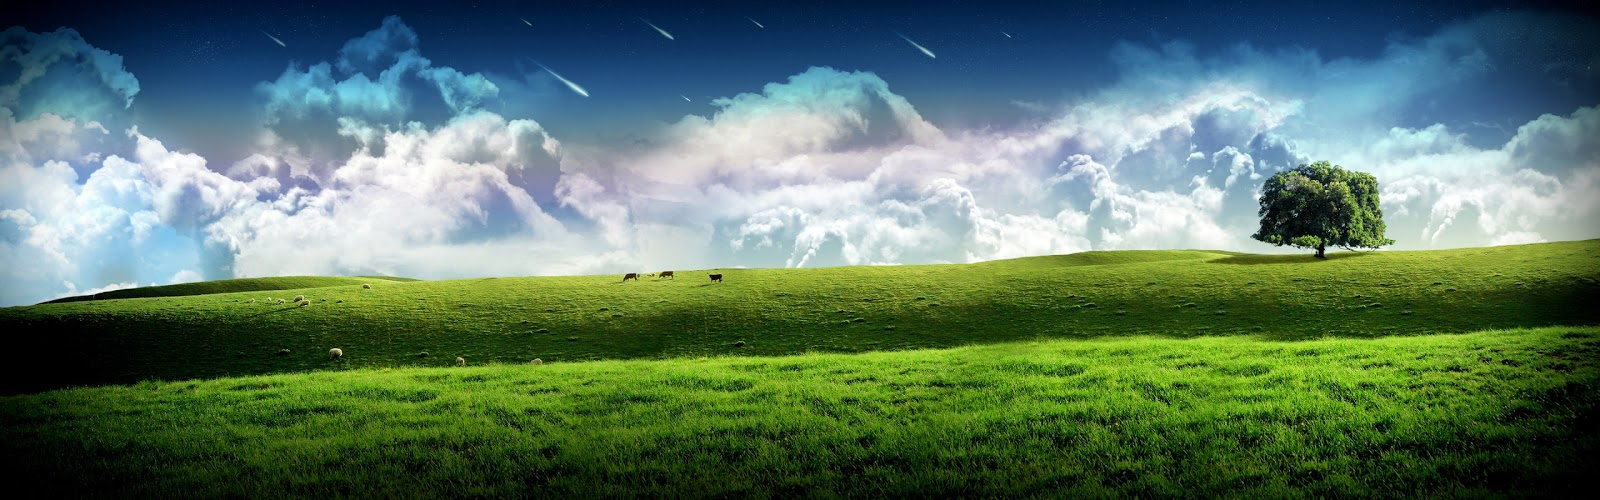 dual monitor wallpaper windows 7 theme